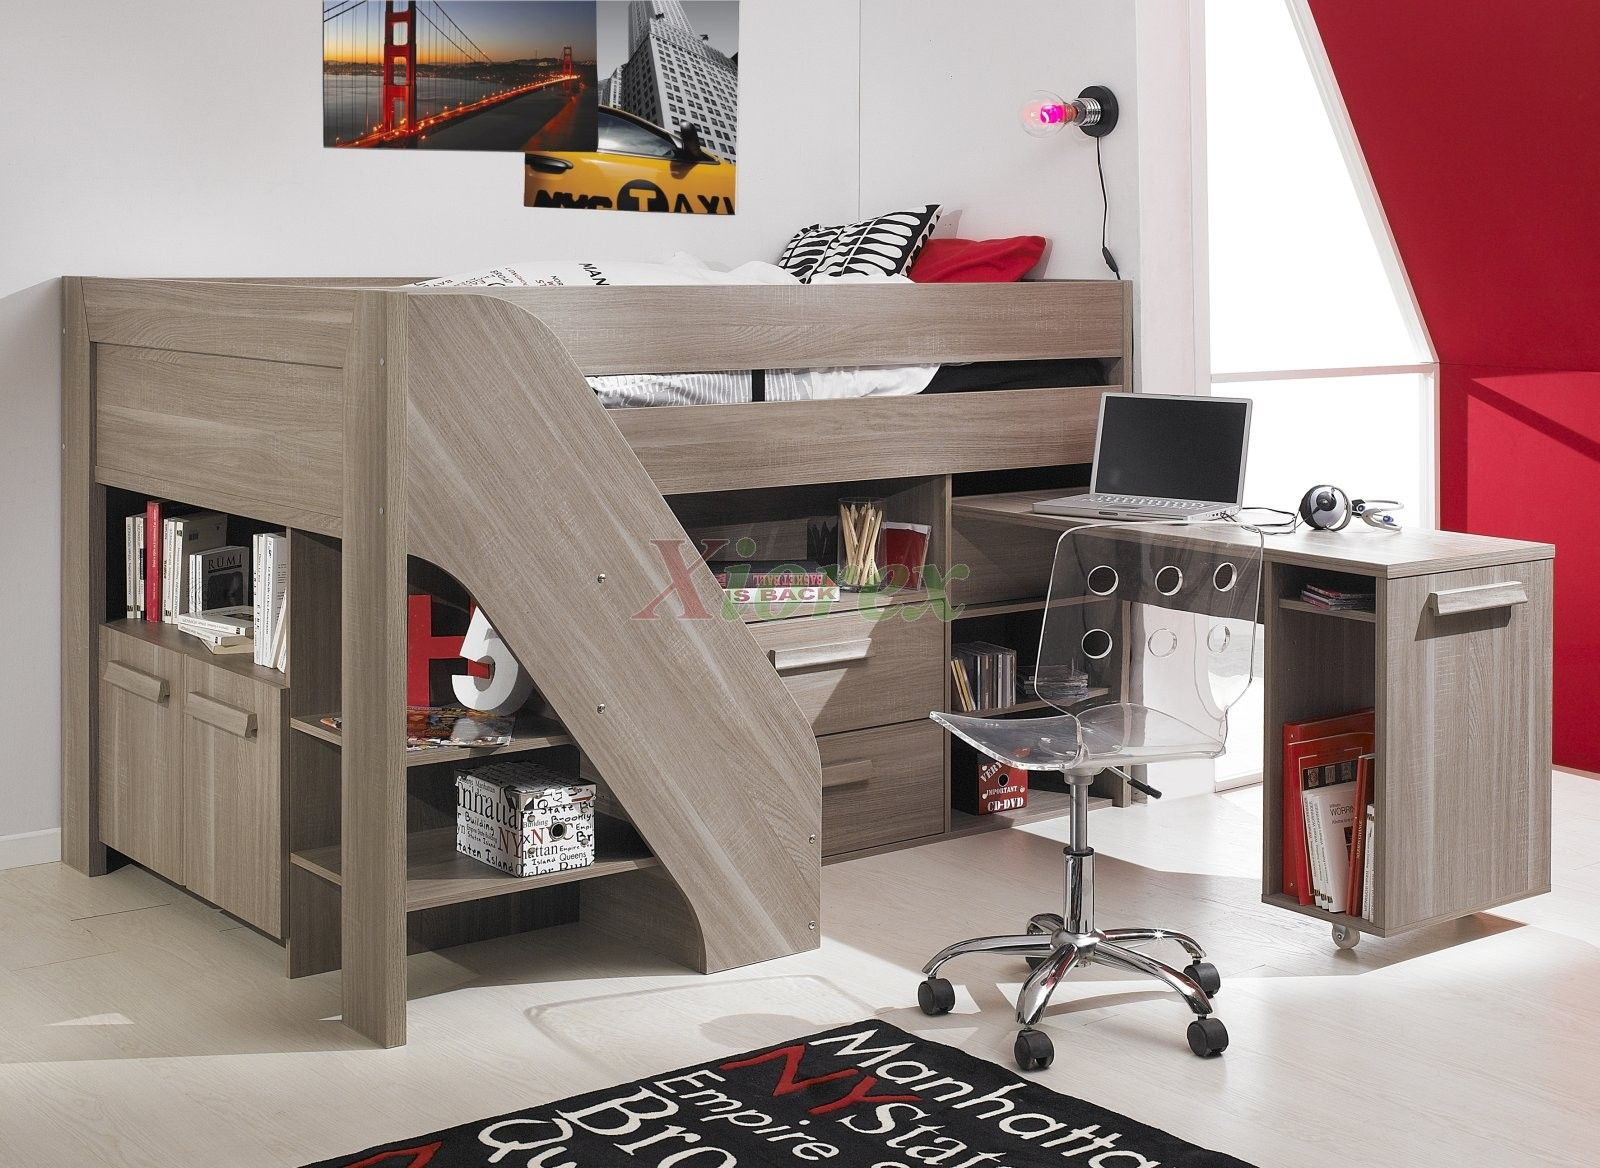 Design Loft Beds With Desk For Girls boys loft bed with desk gami hangun youth cabin beds stairs for girls